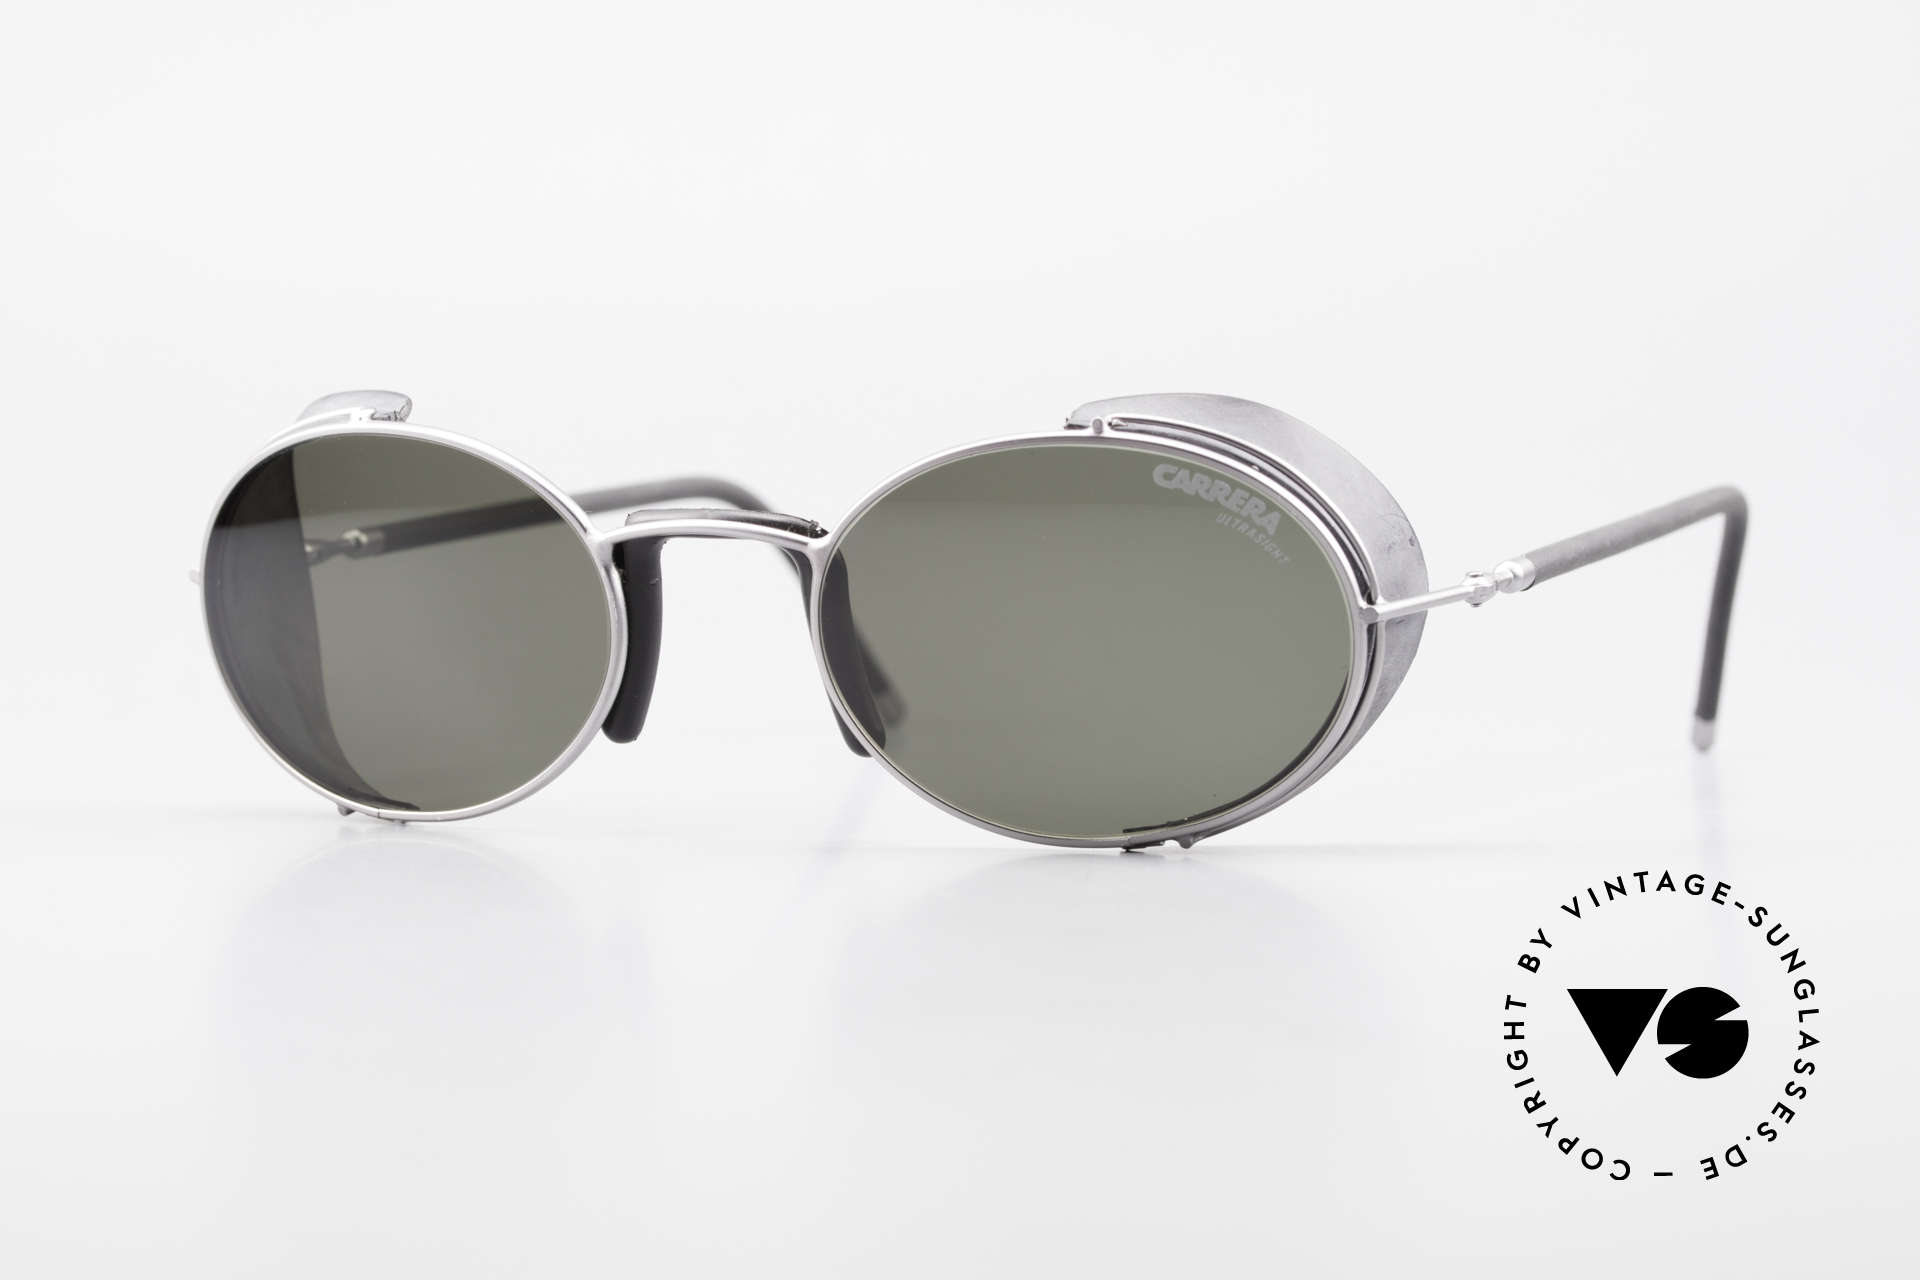 Carrera 5580 90's Sportsglasses Steampunk, striking vintage Carrera (sports) sunglasses of the 90's, Made for Men and Women